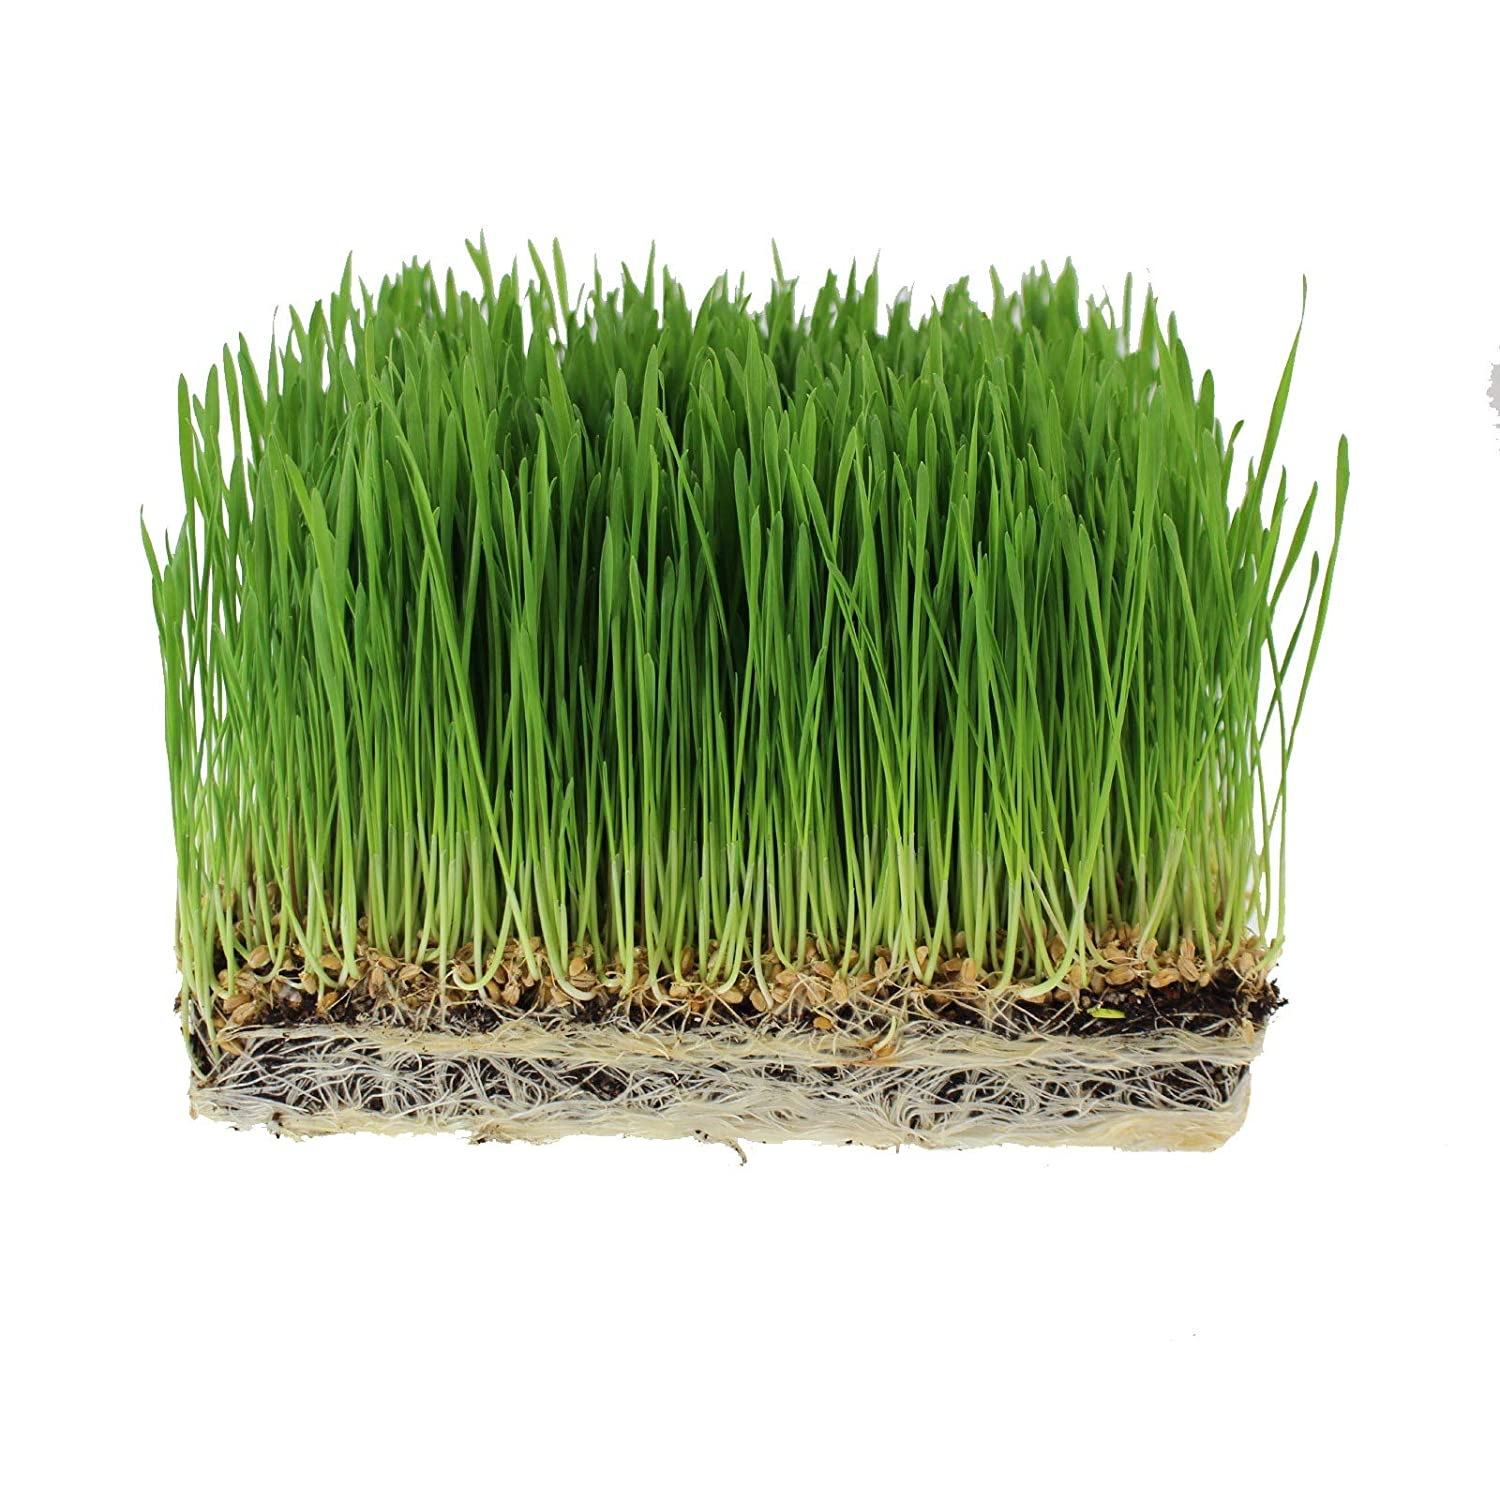 Handy Pantry Organic Wheatgrass Seeds | For Wheat Grass, Cat Grass, Food Storage & More | Hard Red Wheat (1 Pound)